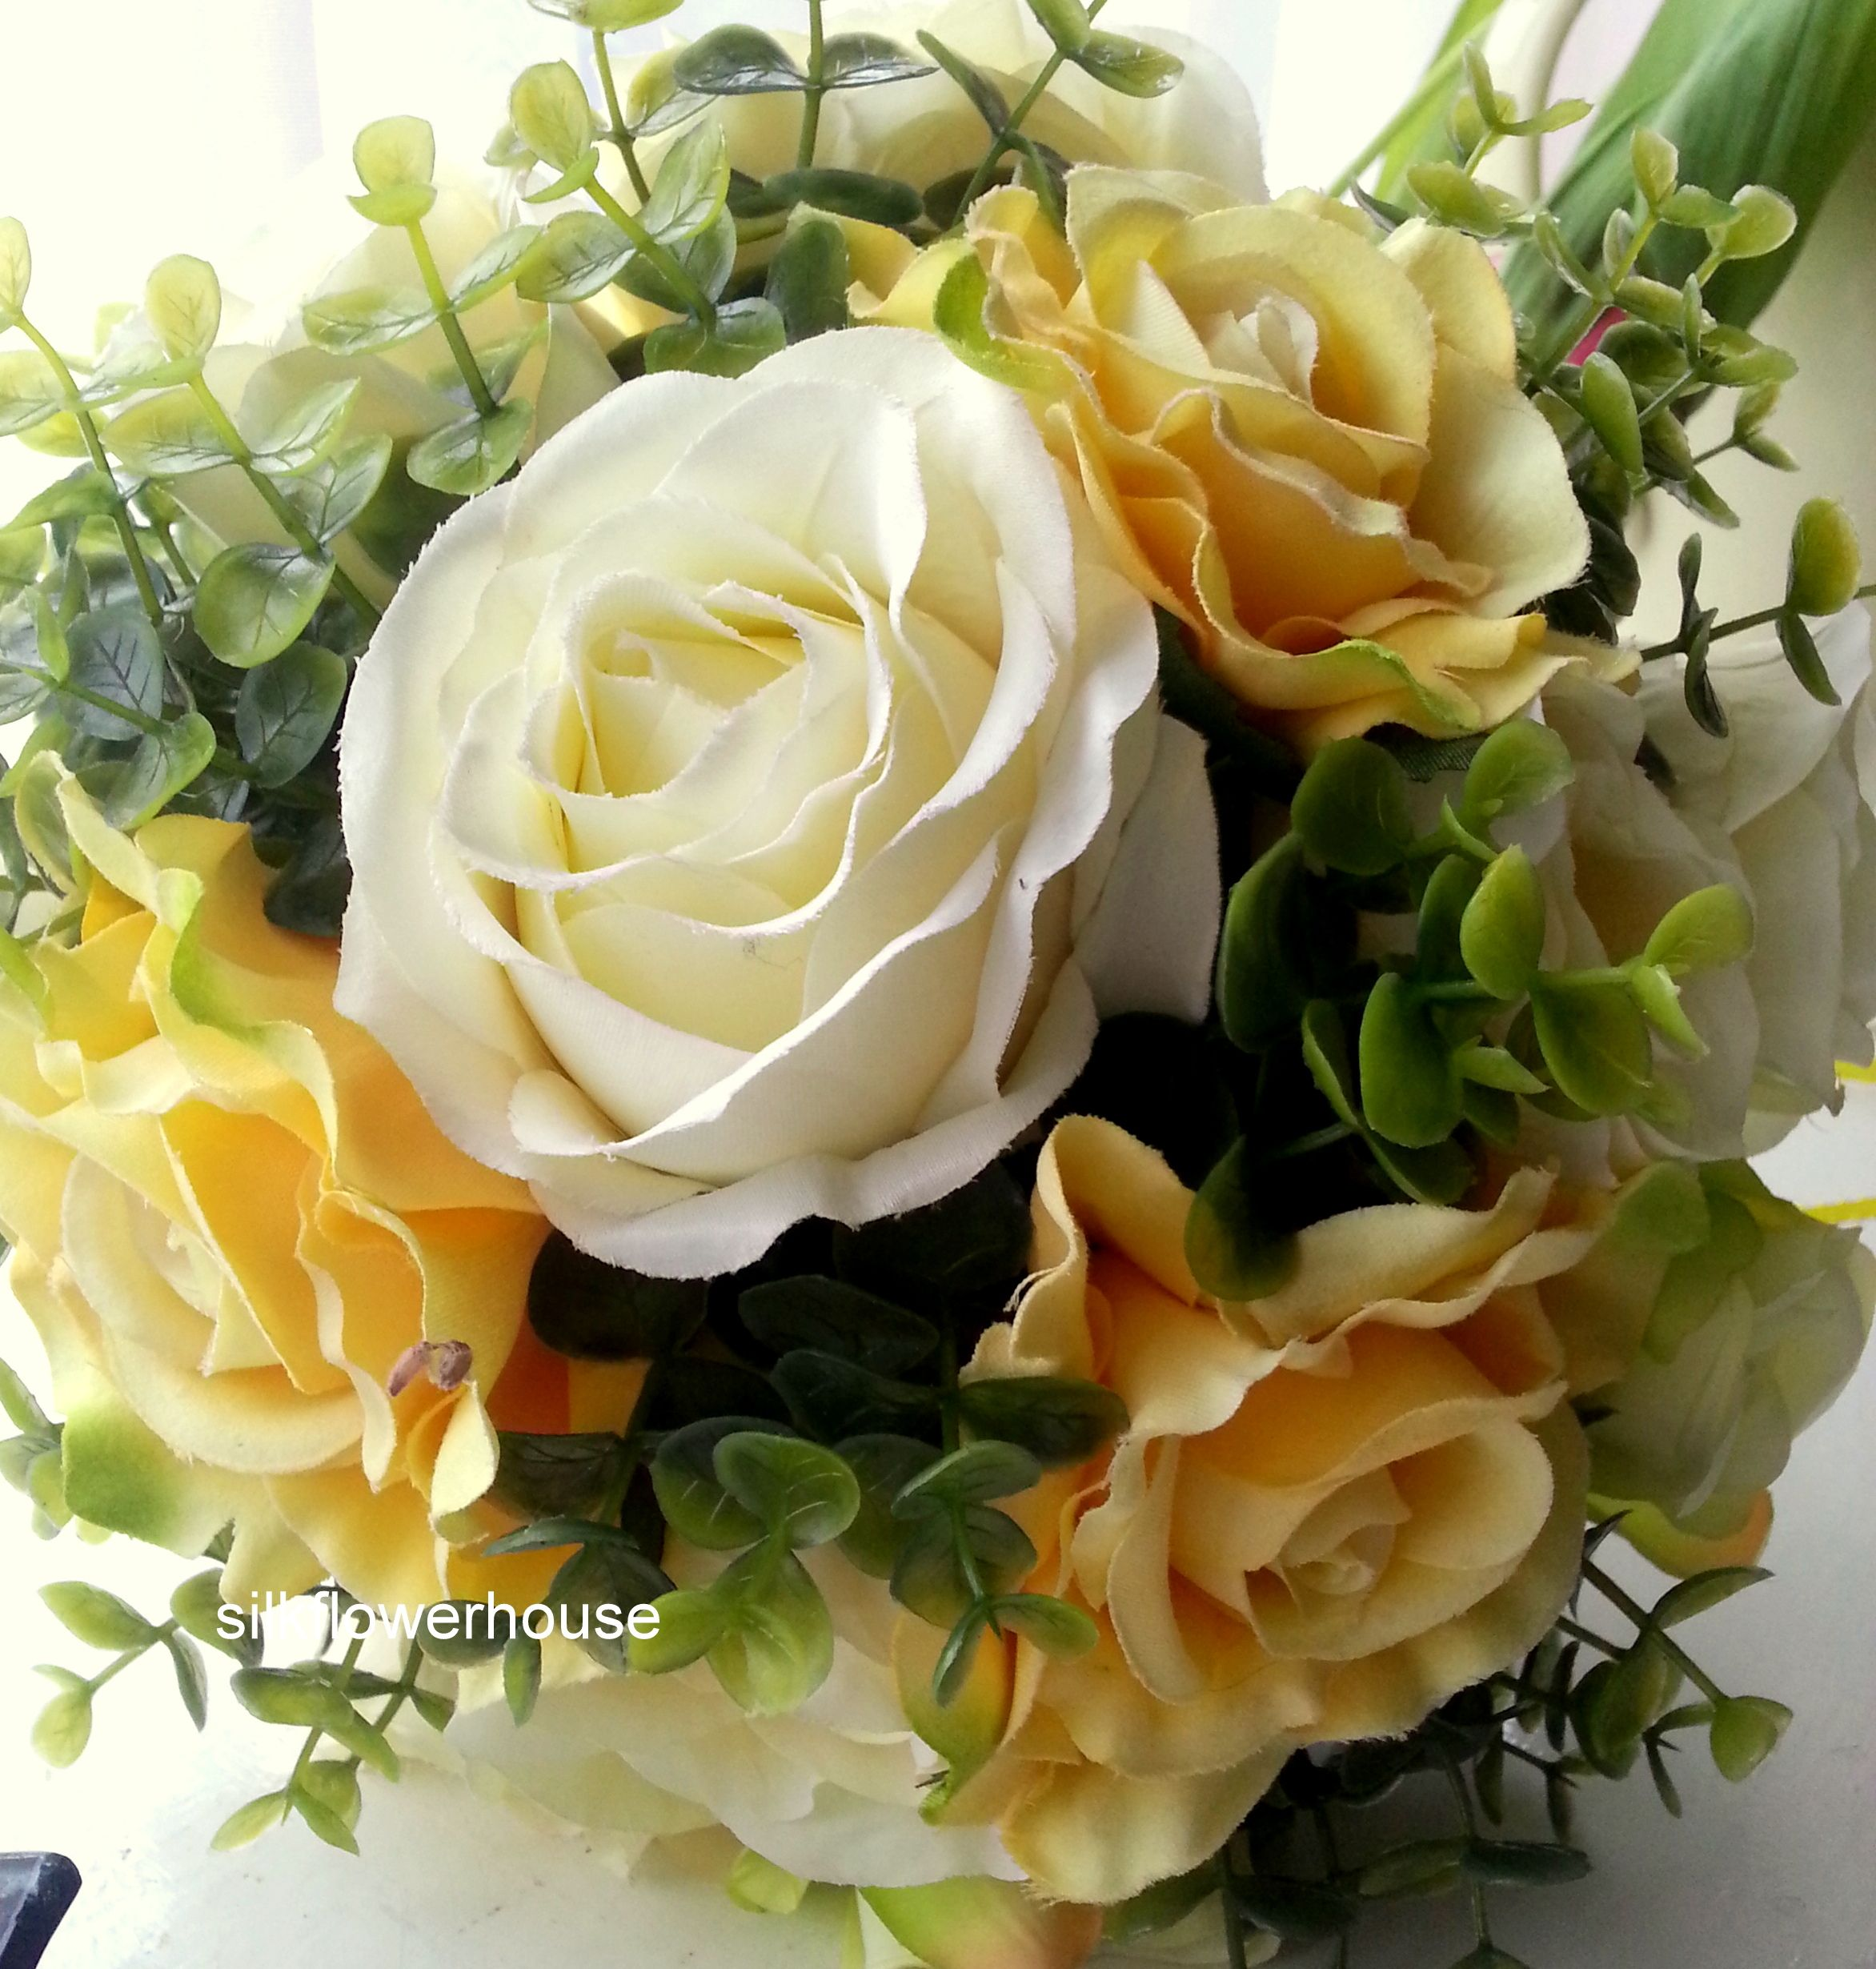 Artificial Rose Bridal Bouquet Silk Roses In Pale Lemon And Golden Yellow Www Silkflowerhouse Com Flowers Uk Rose Bridal Bouquet Artificial Flowers